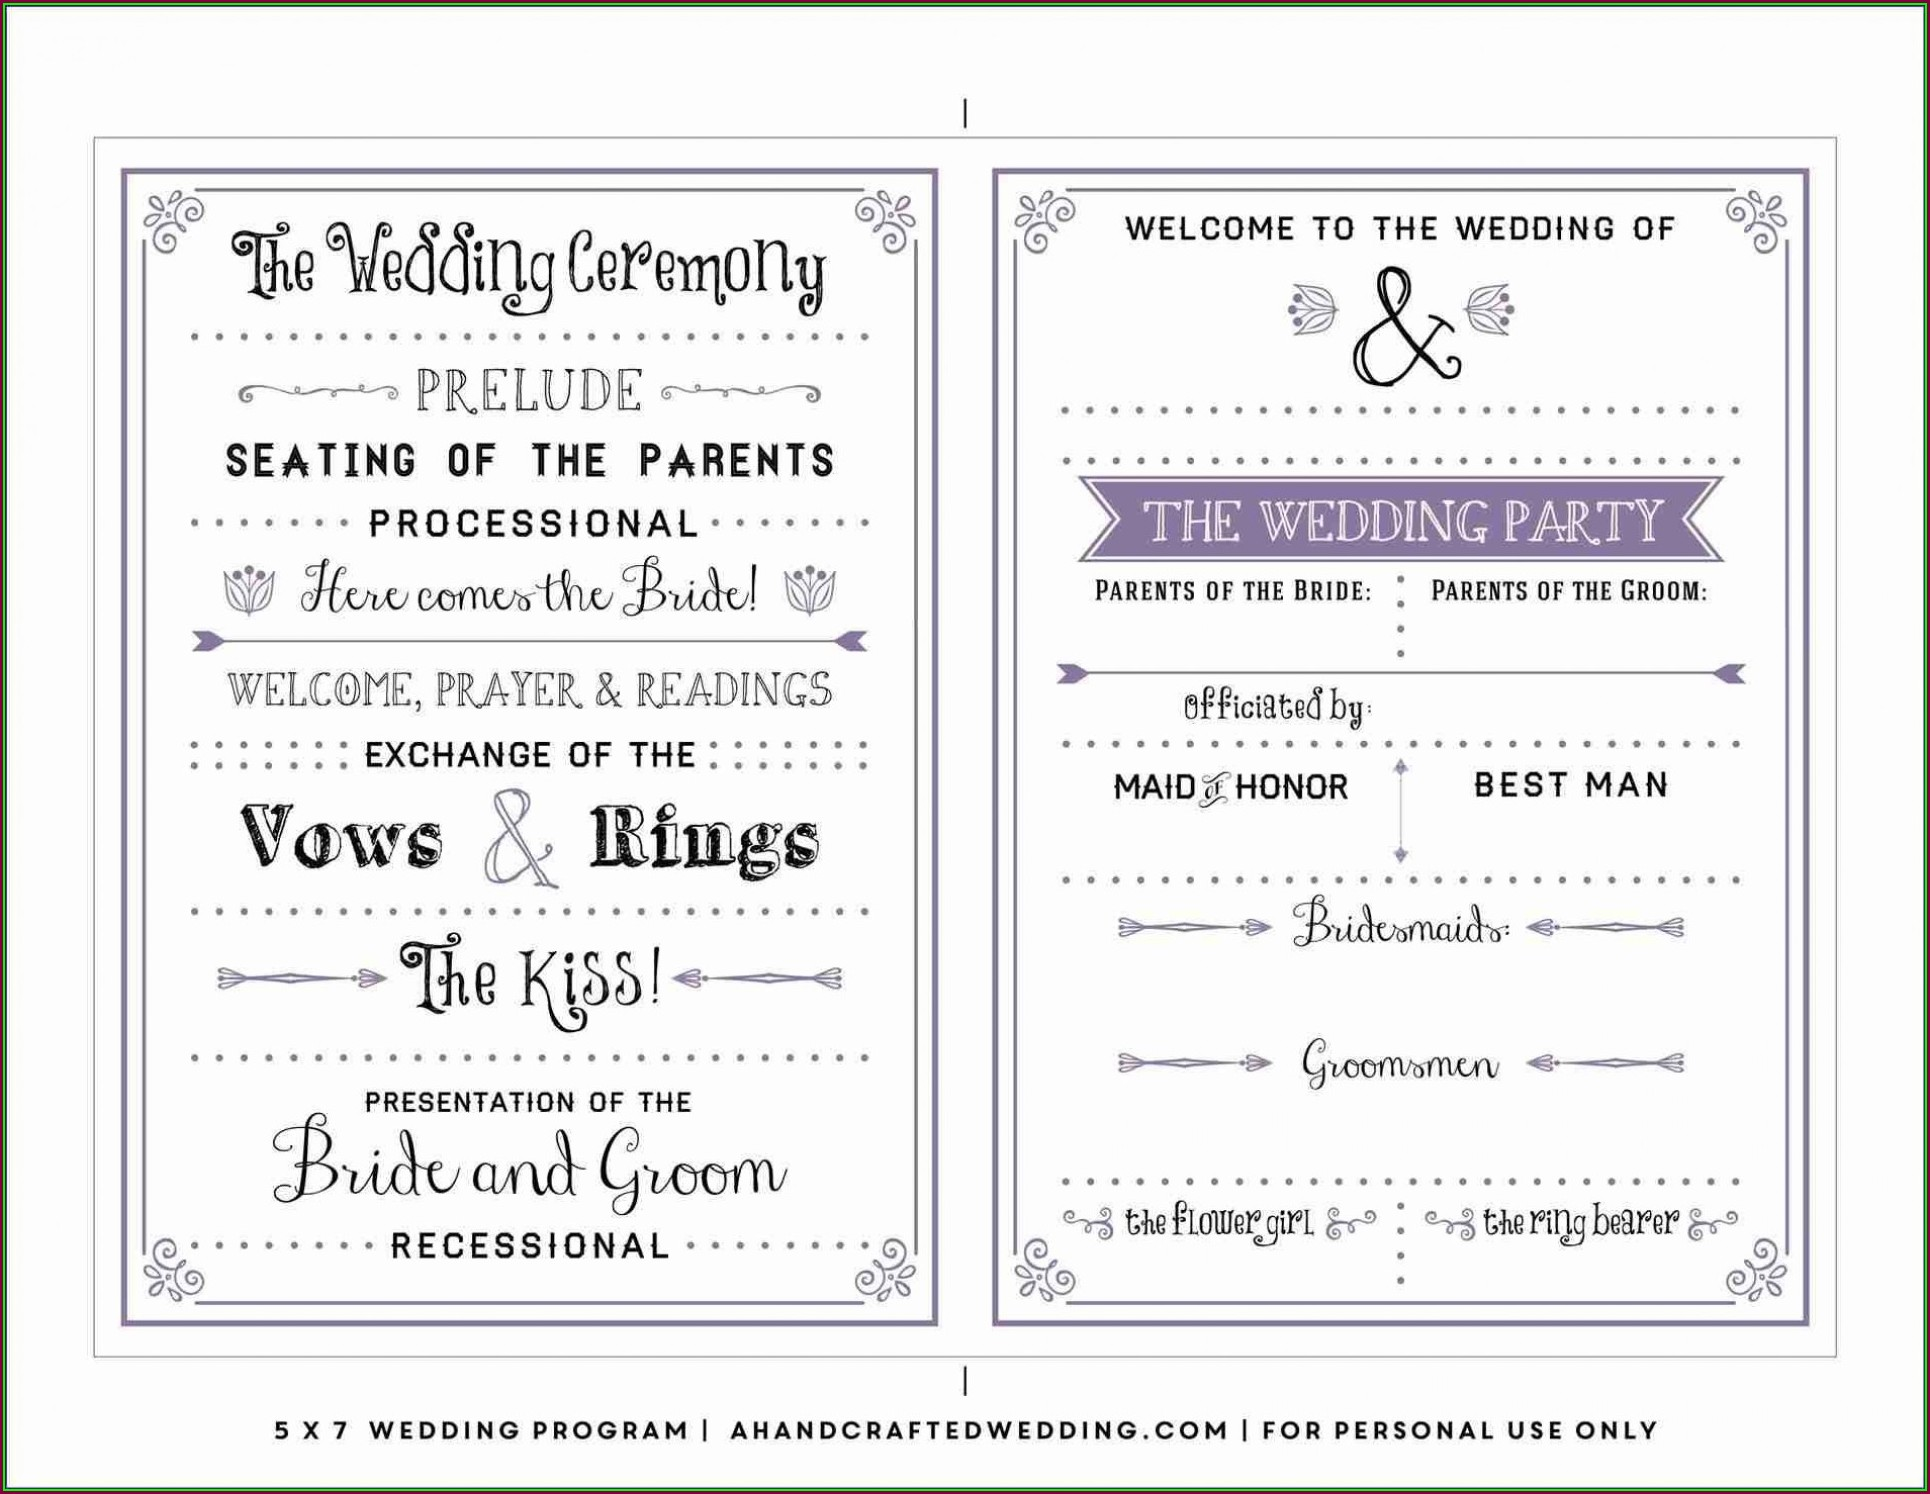 Wedding Weekend Itinerary Template For Guests